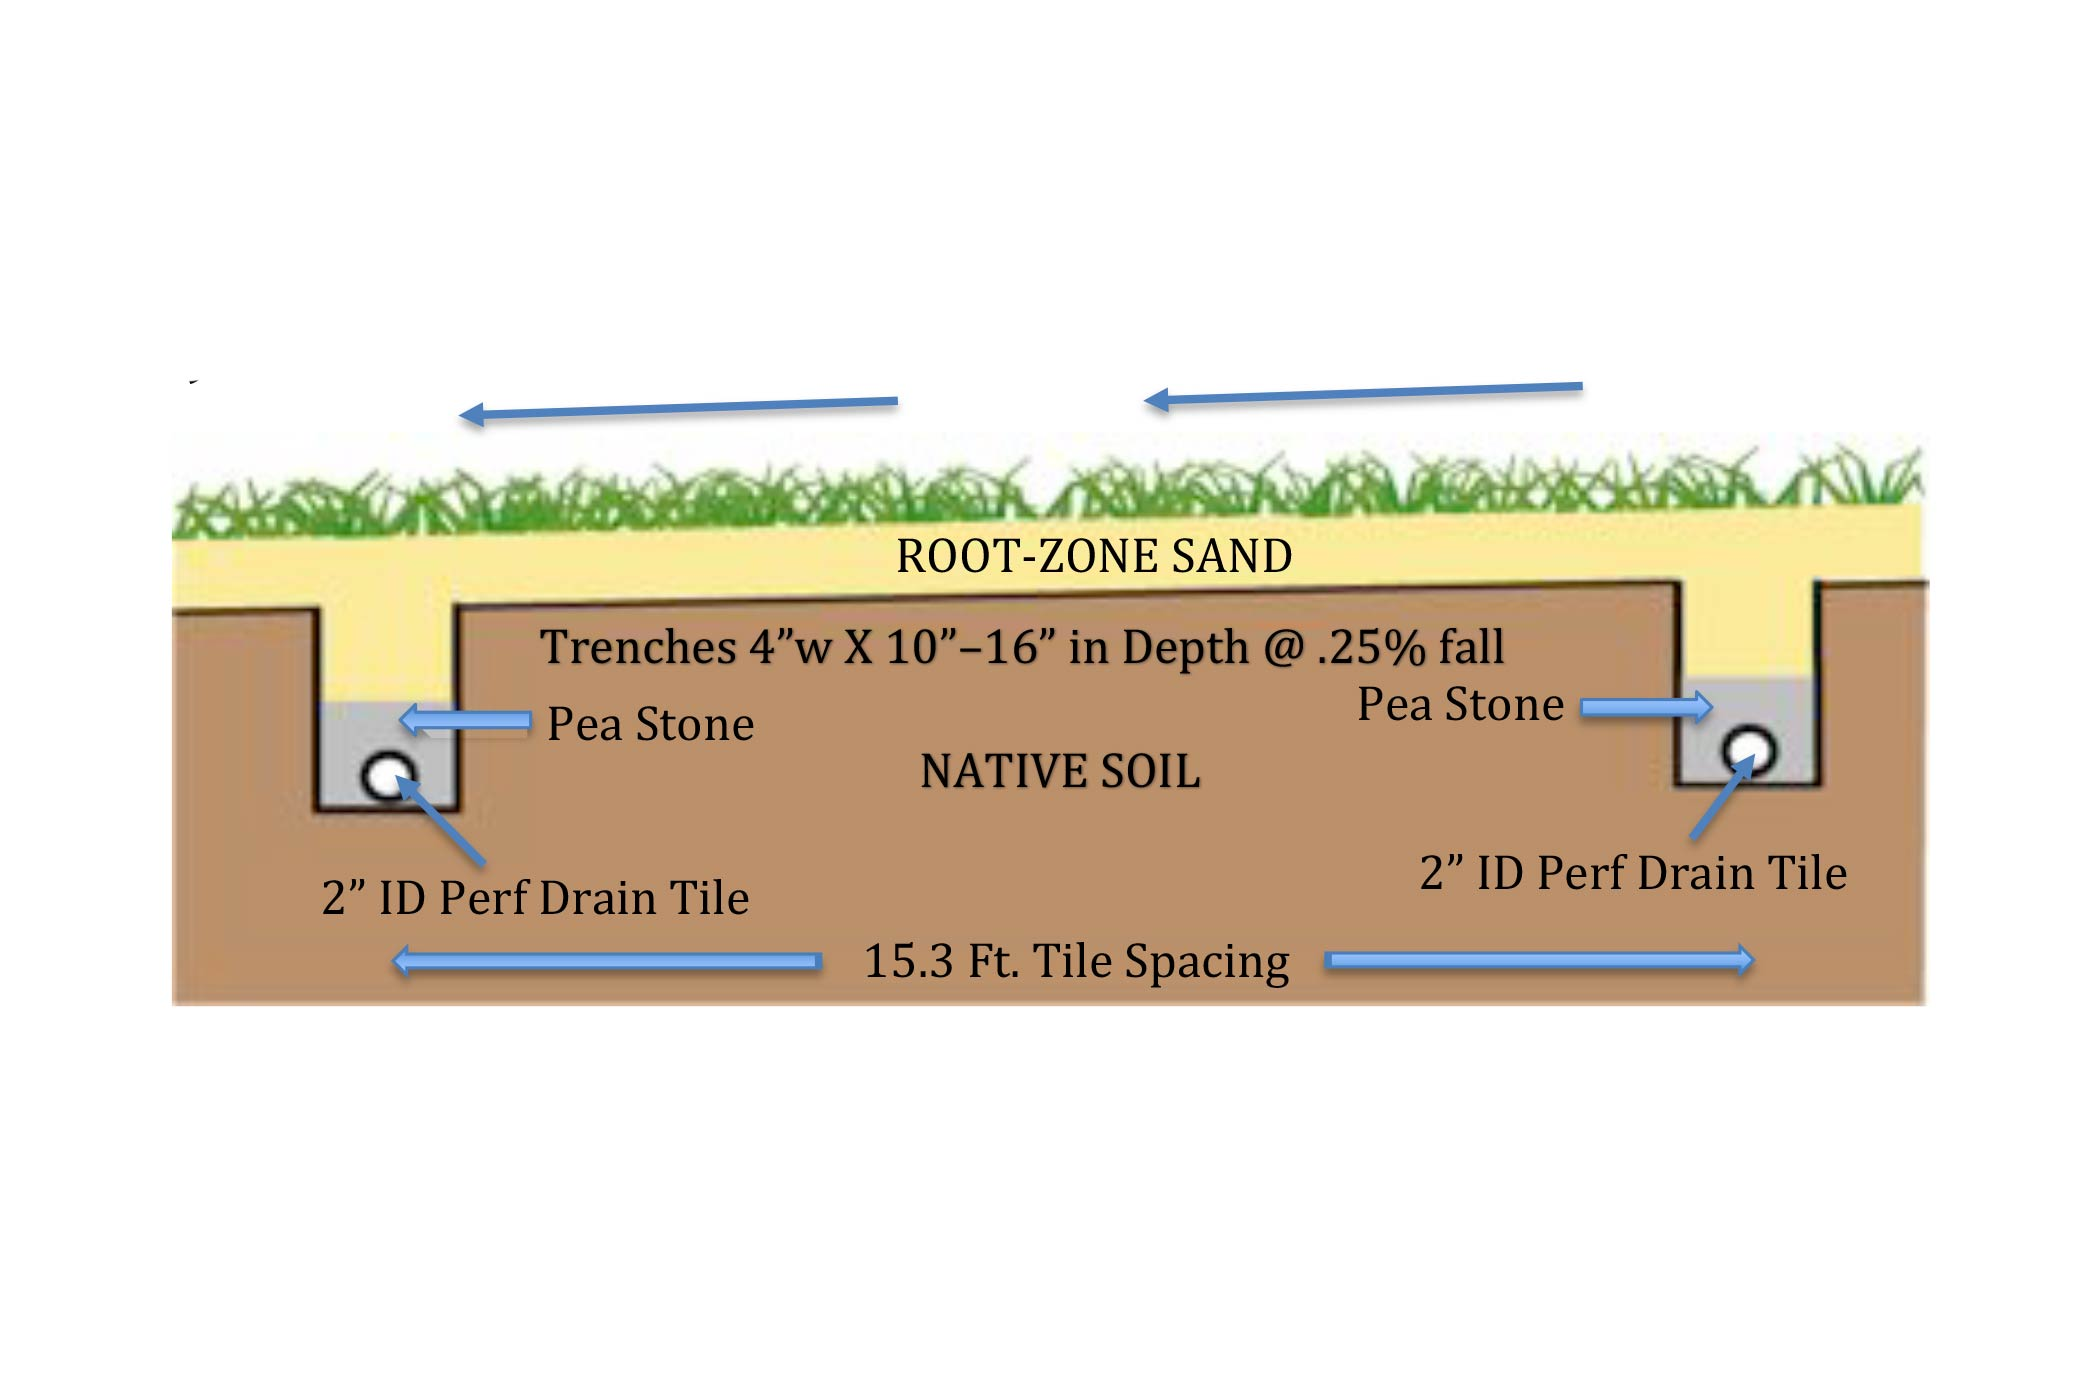 A cross section sketch of the drainage for a field